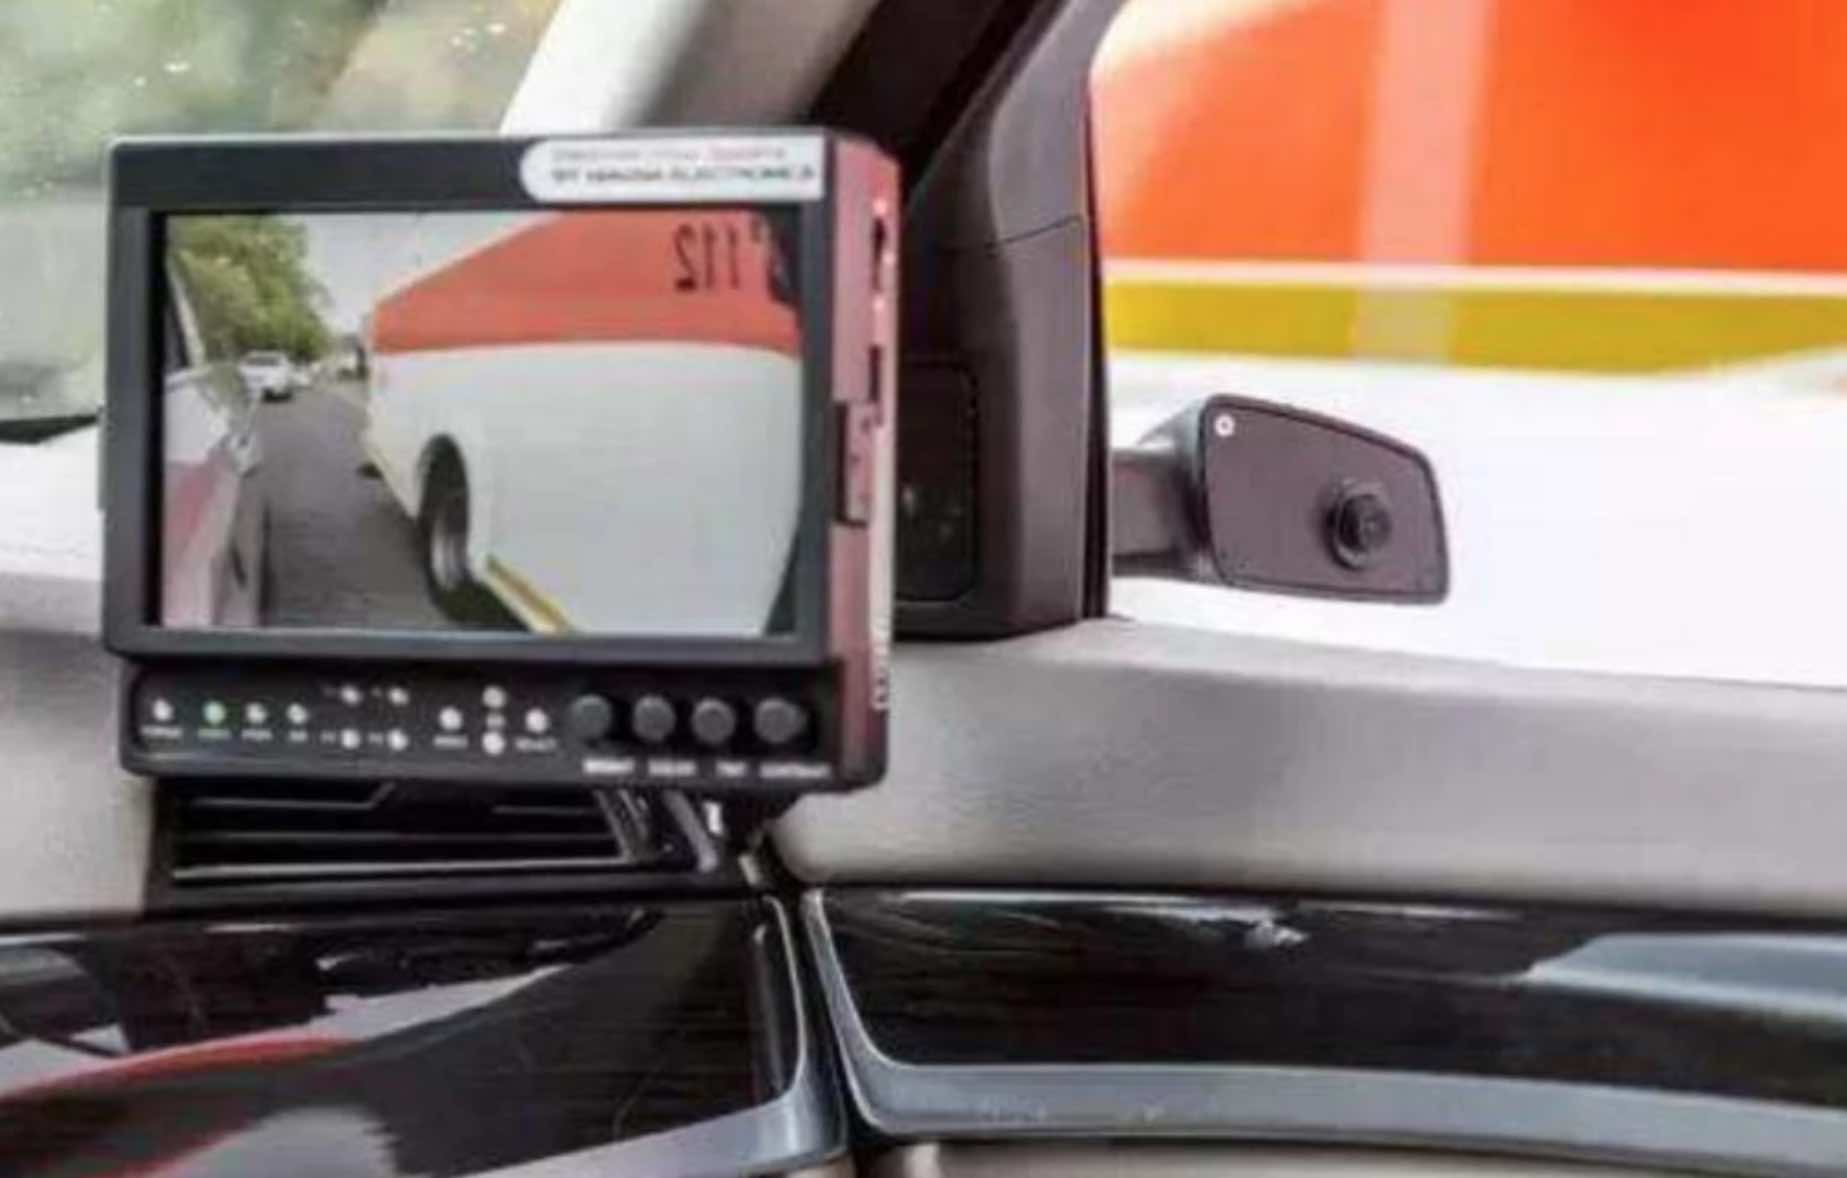 Japan has Implemented the Elimination of Rear View Mirrors on their Vehicles, the new method is more Convenient